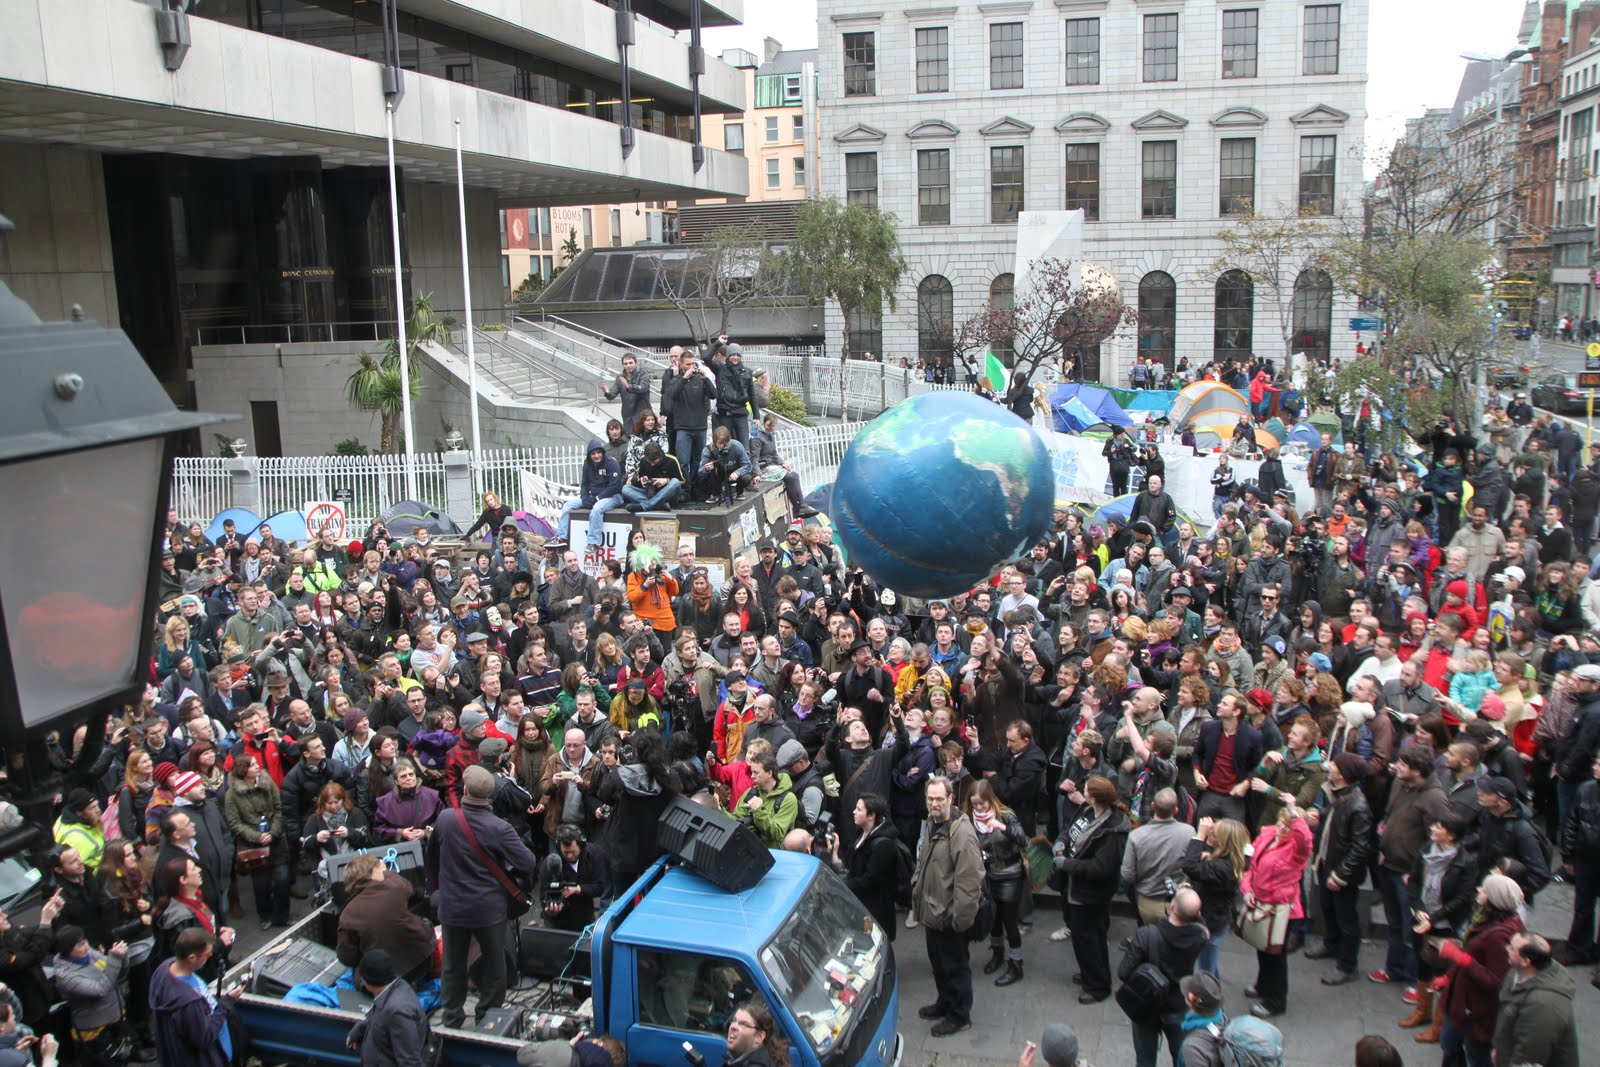 http://www.indymedia.ie/attachments/nov2011/bragg_crowd.jpg